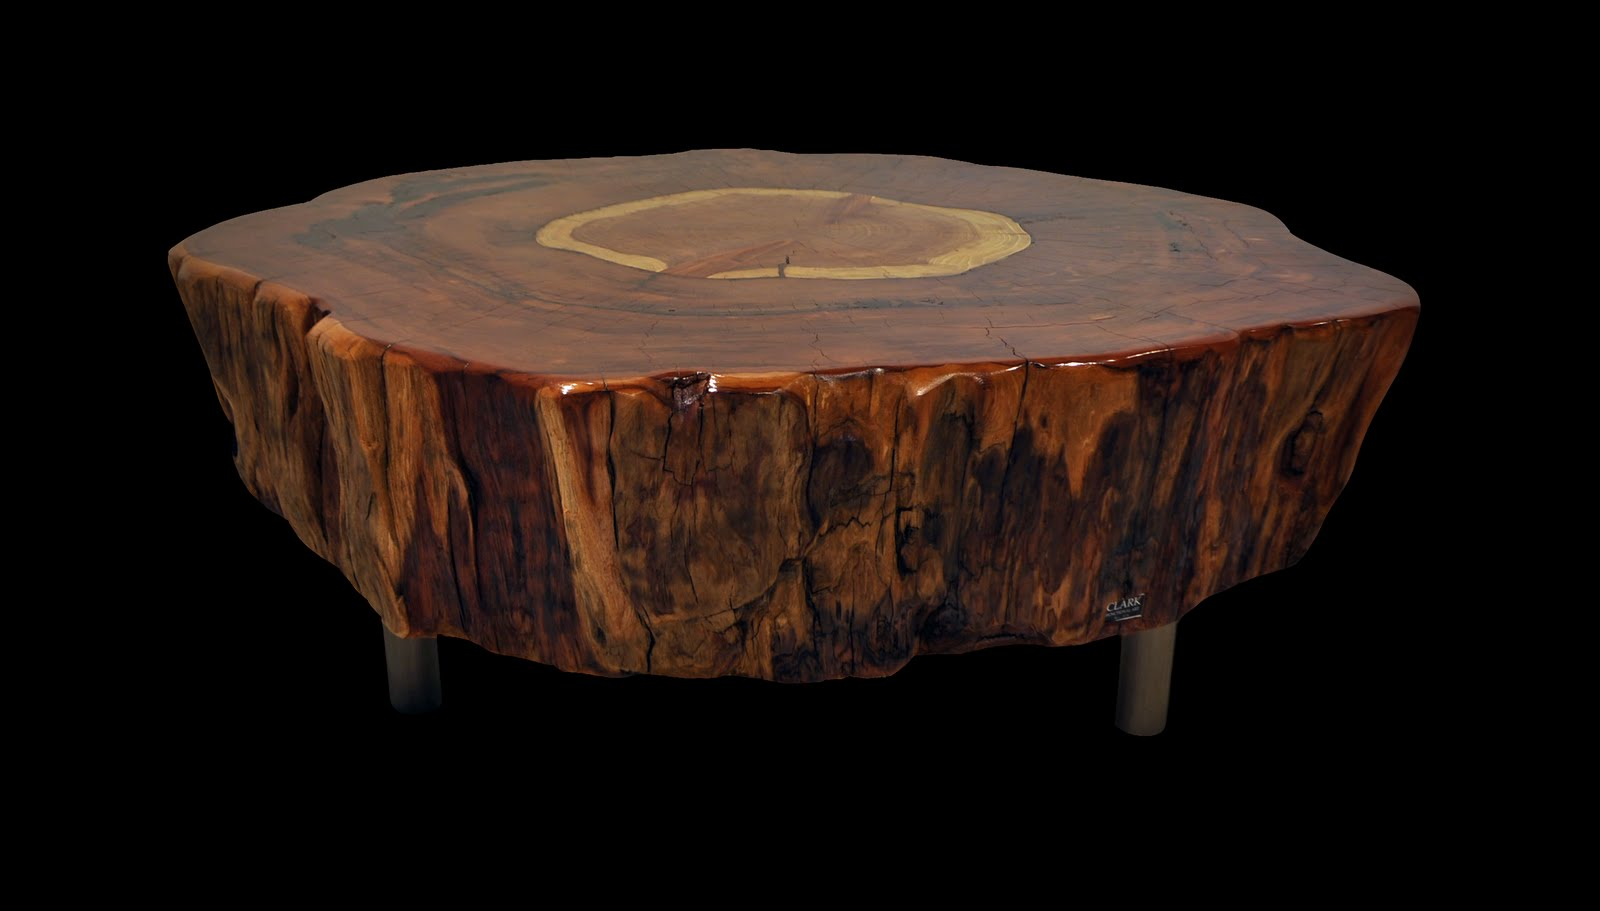 Clark Functional Art Very Large 4 1 2 Foot Diameter Redwood Tree Trunk Table